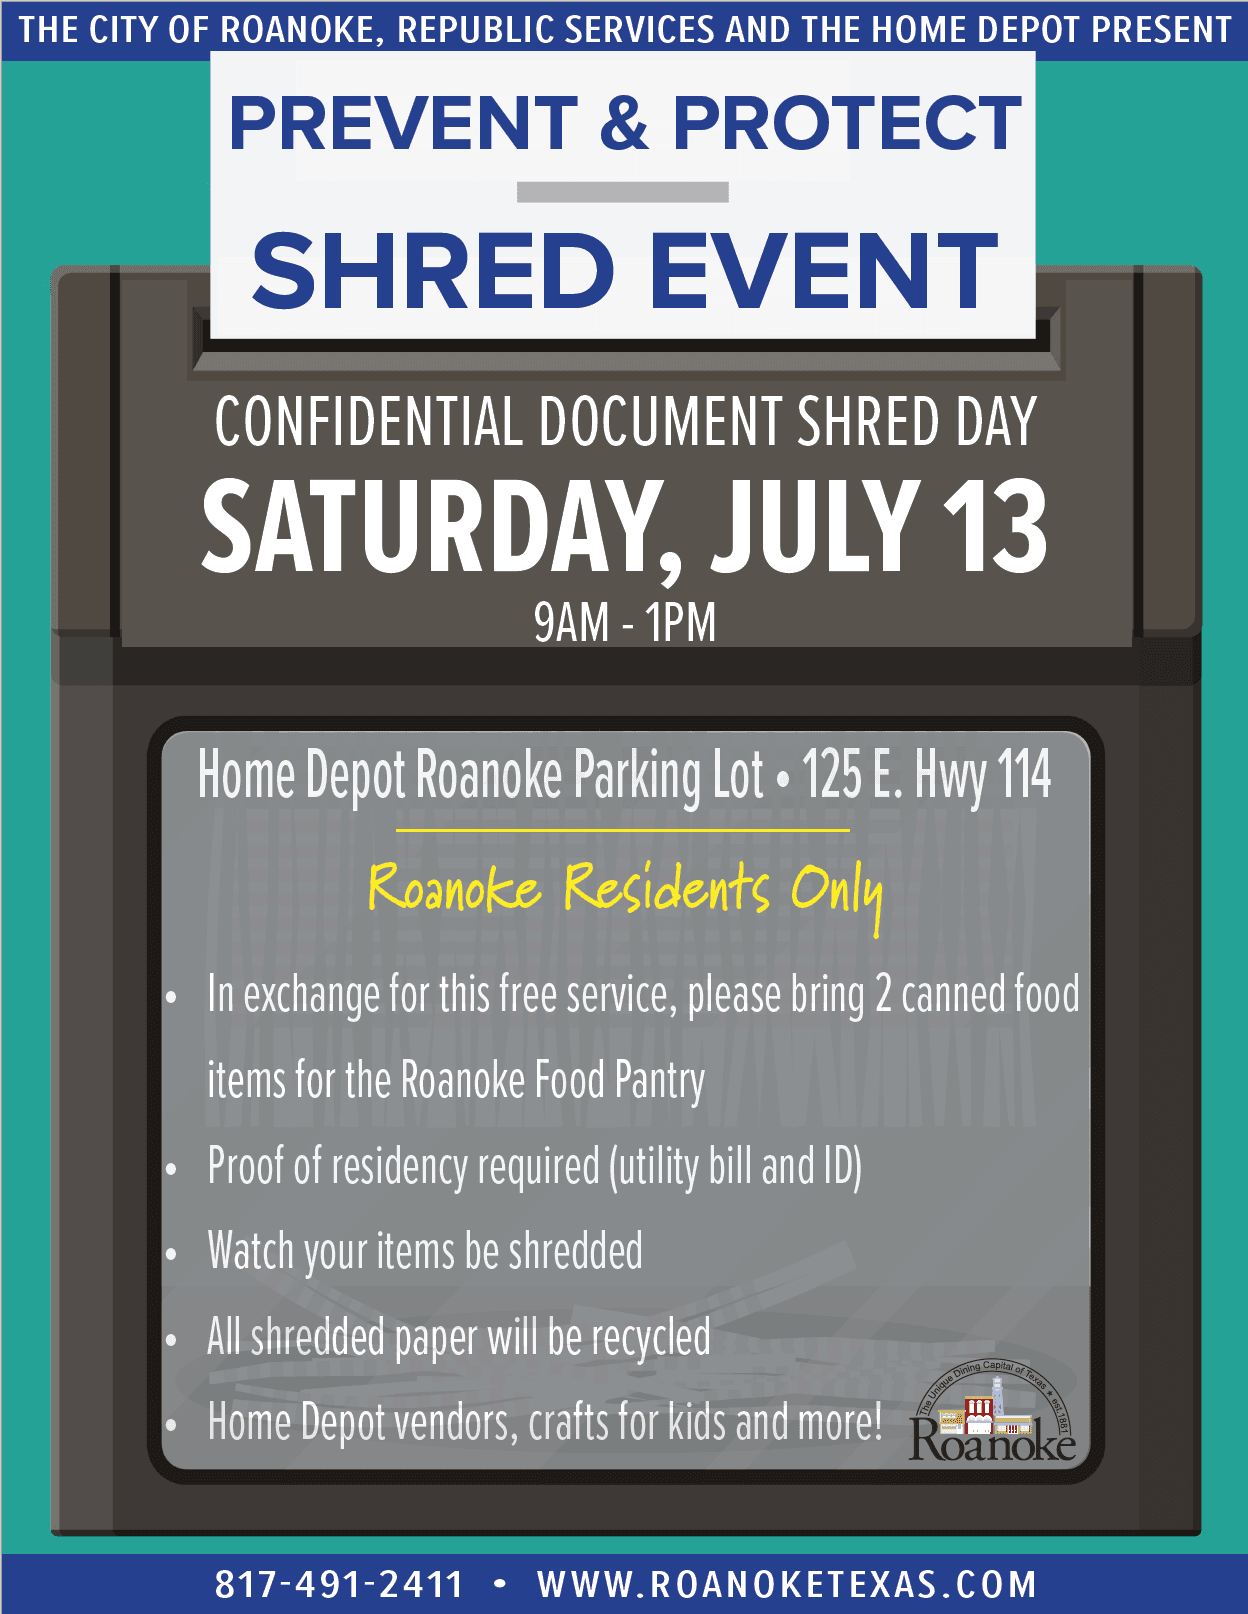 Prevent & Protect Shred Event | Roanoke, TX - Official Website